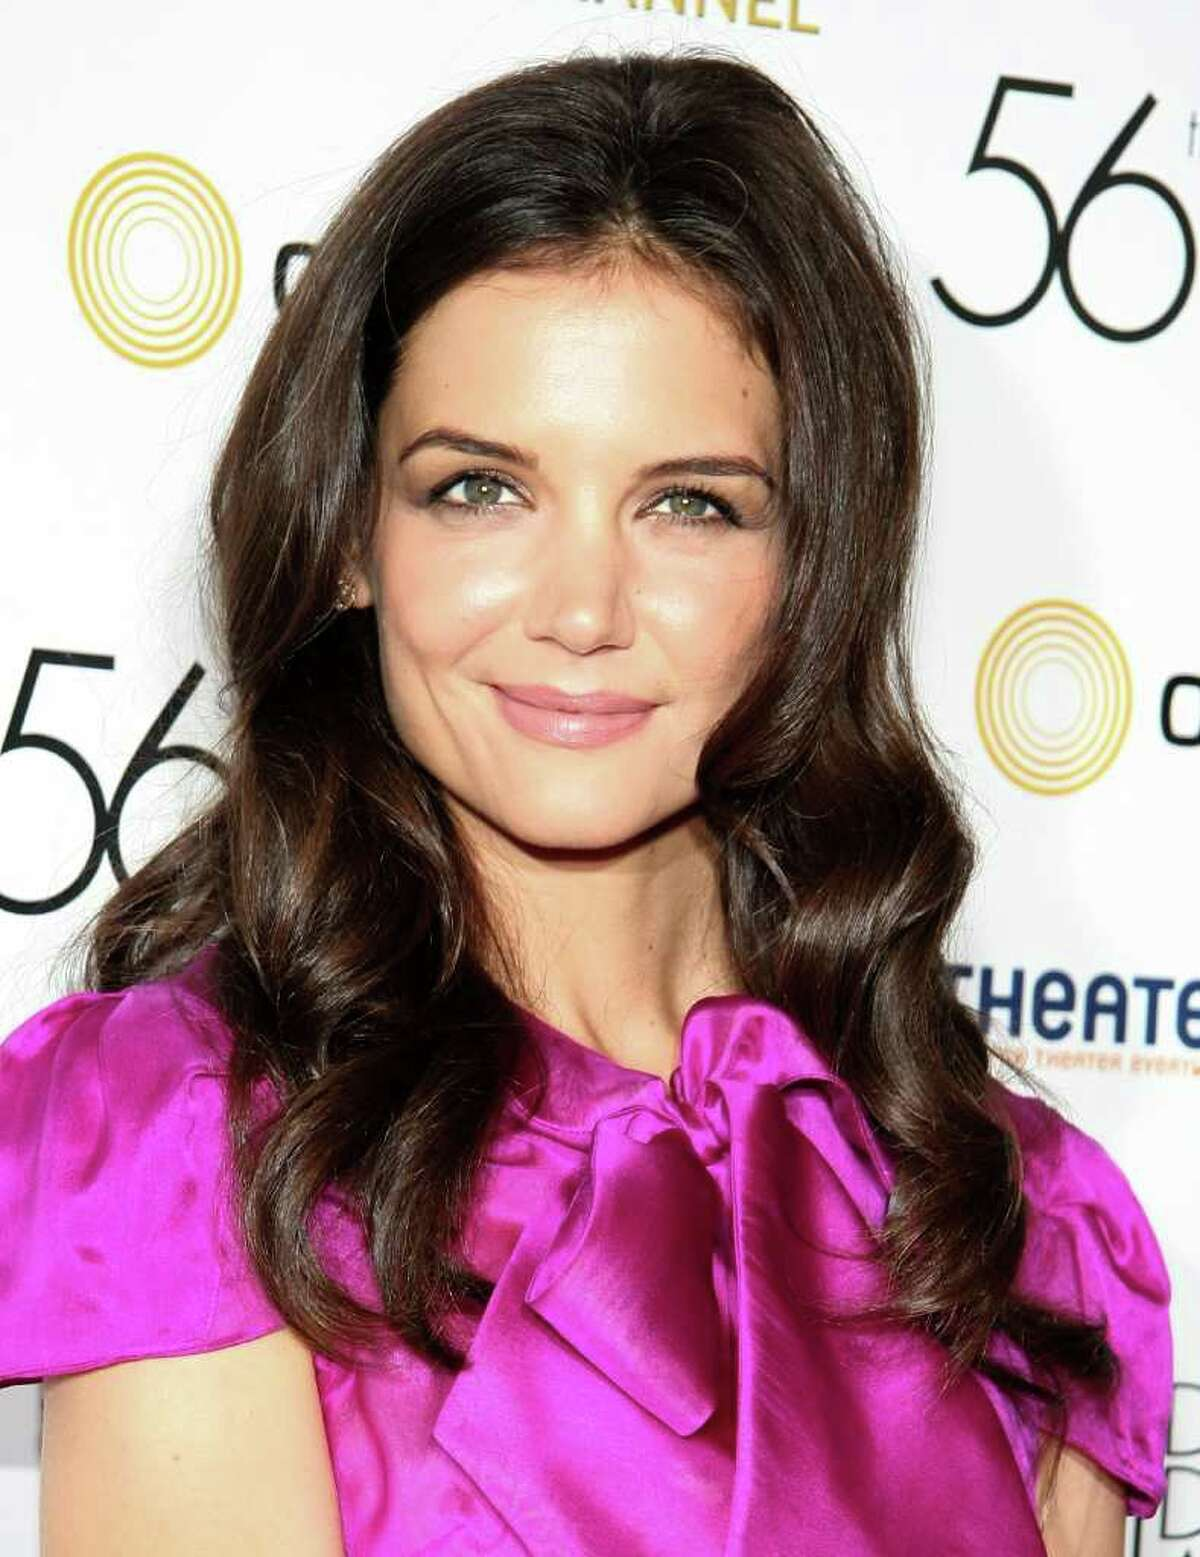 Actress Katie Holmes attends the 56th annual Drama Desk awards at Hammerstein Ballroom in New York City.